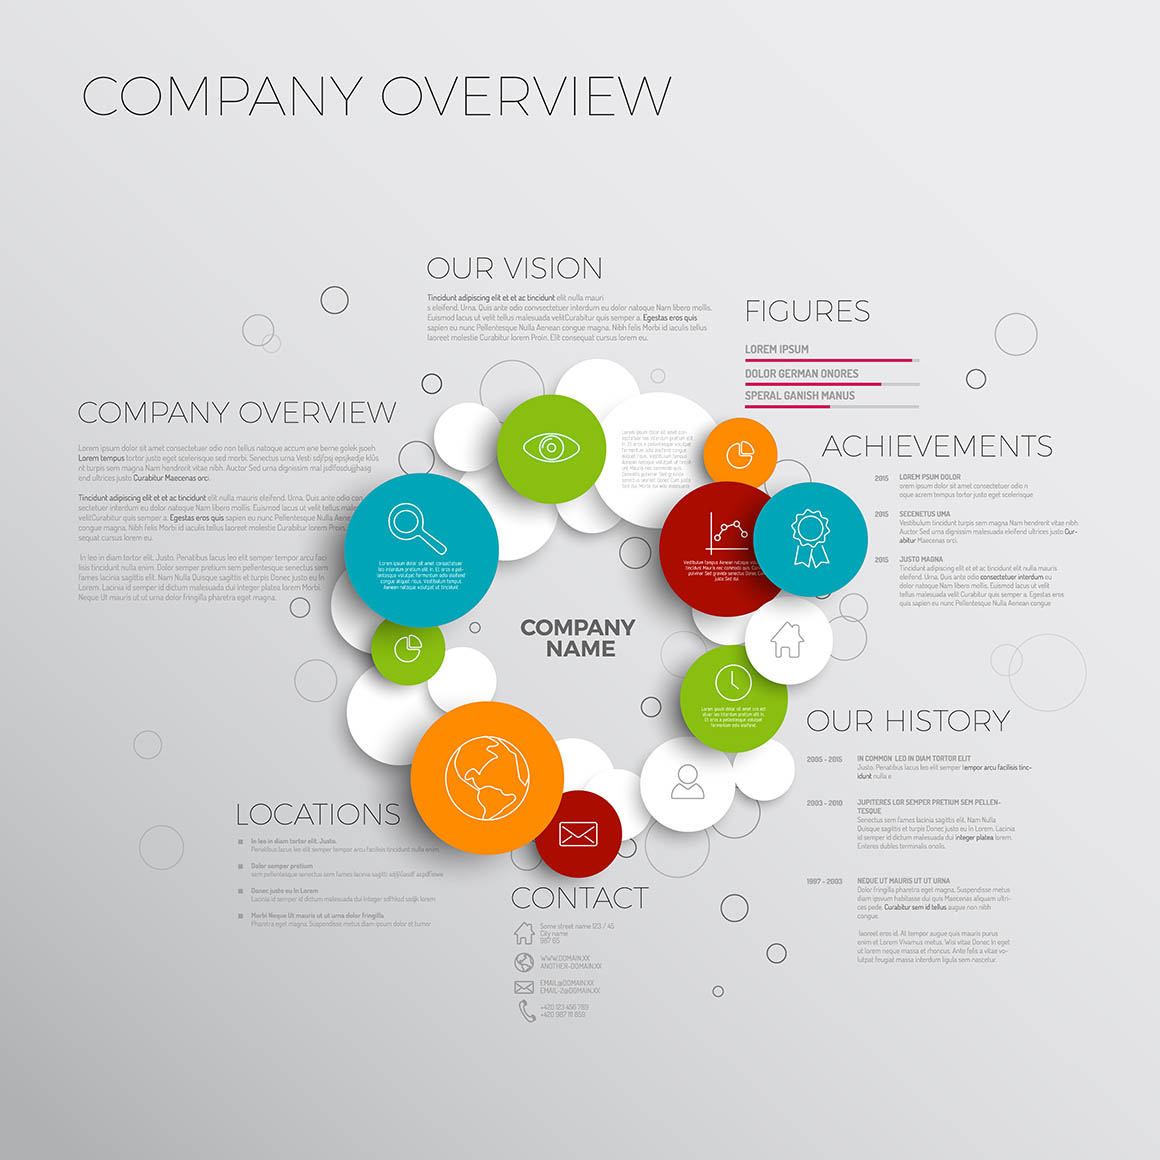 Vector Company infographic overview design template made from circles and icons